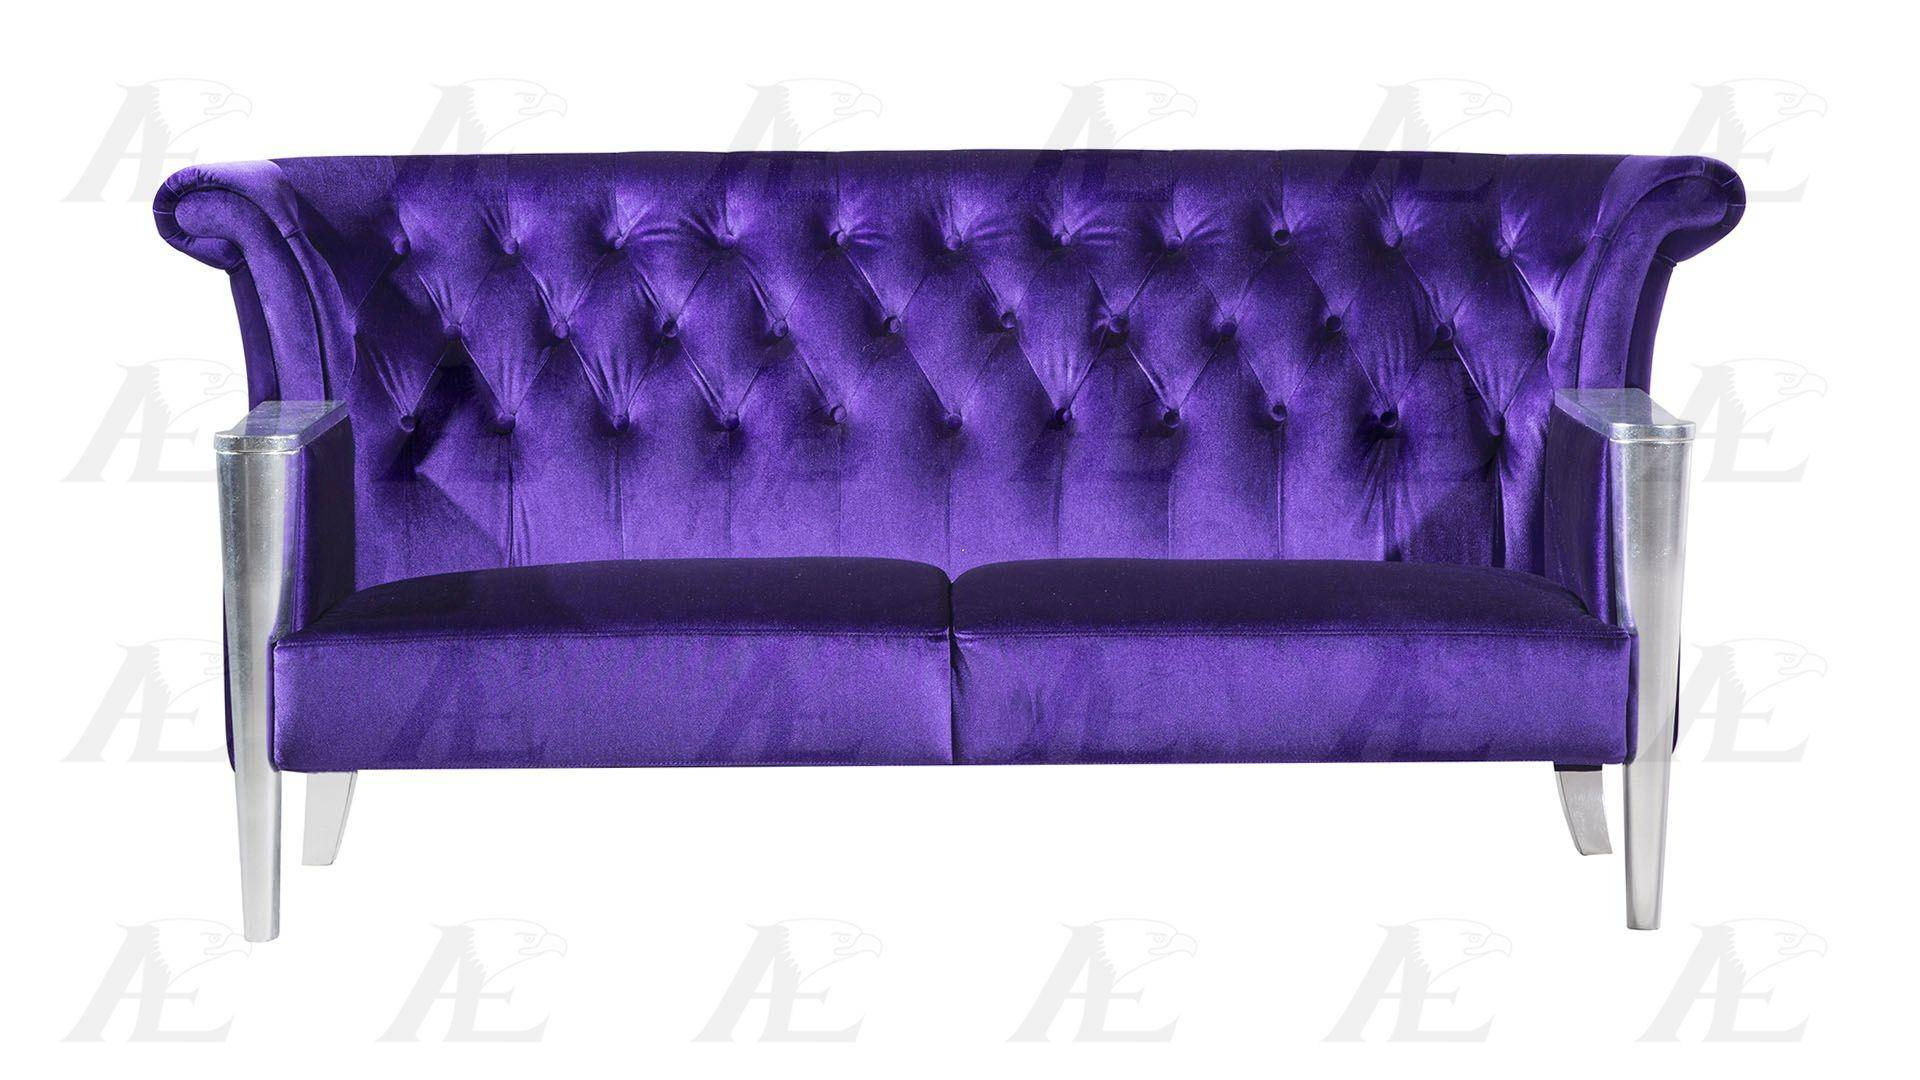 Fantastic American Eagle Furniture Ae592 Purple Sofa Loveseat And Gmtry Best Dining Table And Chair Ideas Images Gmtryco